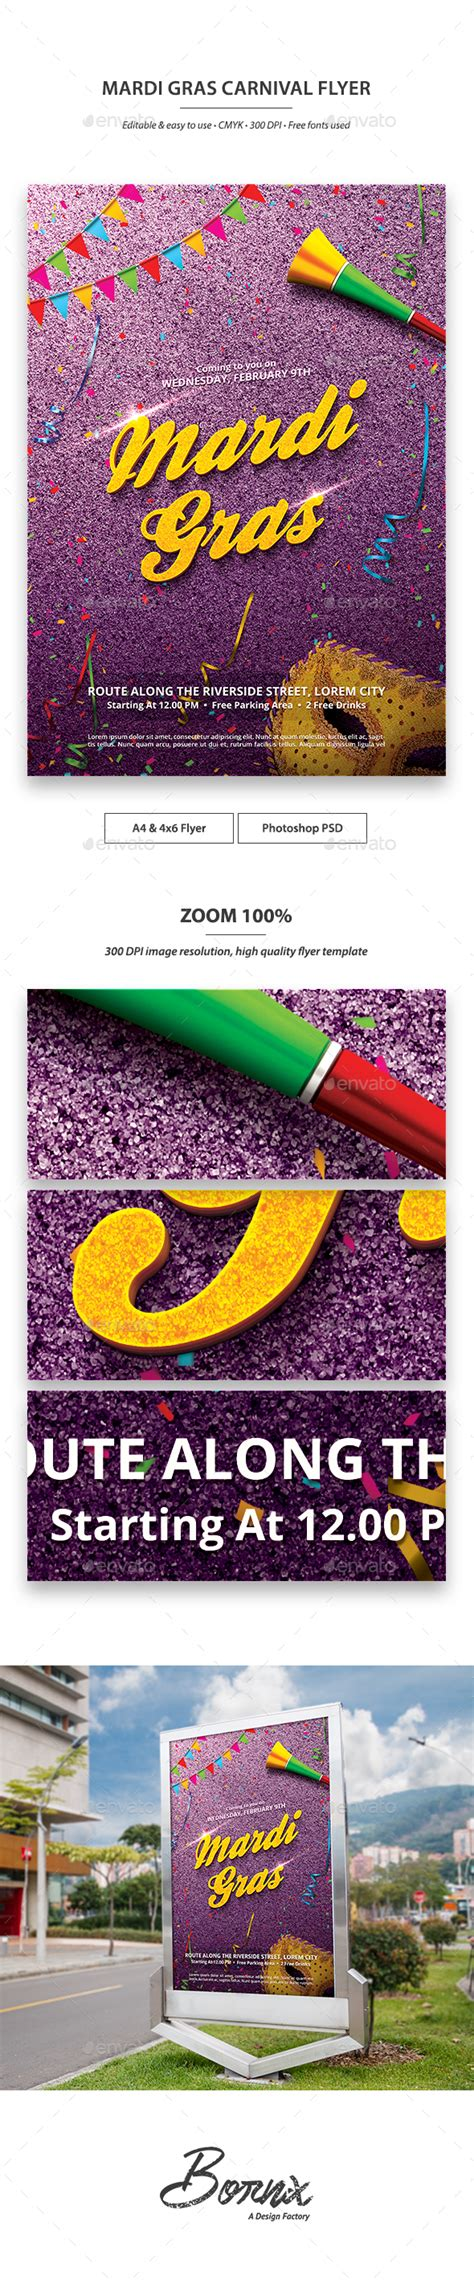 Mardi Gras Carnival Flyer Template By Bornx Graphicriver Mardi Gras Powerpoint Template Free